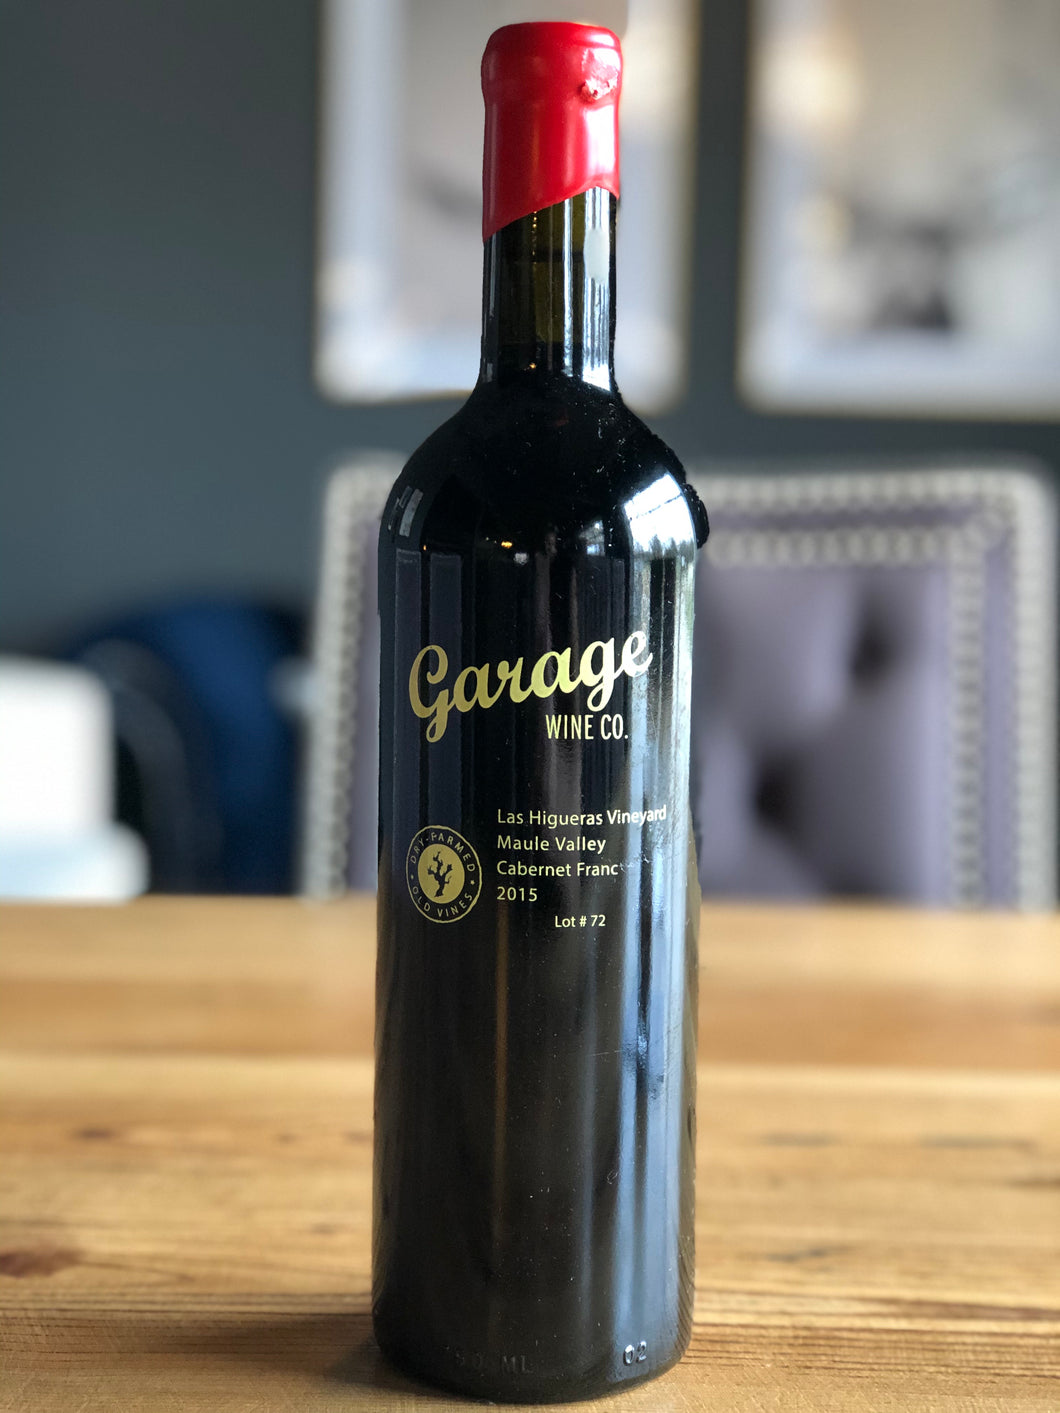 Garage Wine Co. Las Higueras Vineyard 2016 Cabernet Franc Lot #82